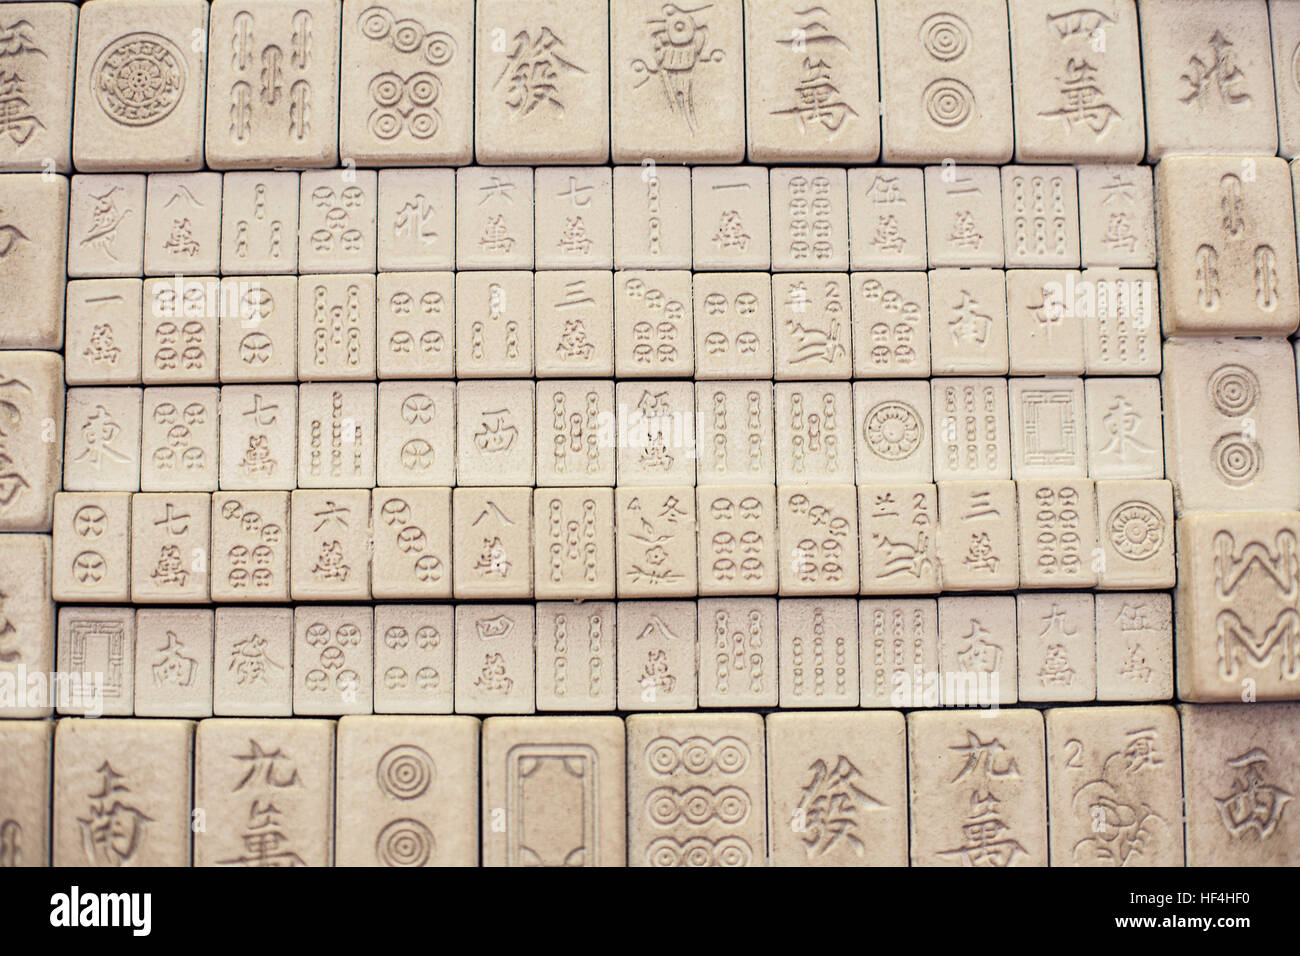 Wall Of Chinese Characters On Bricks White Background Stock Photo